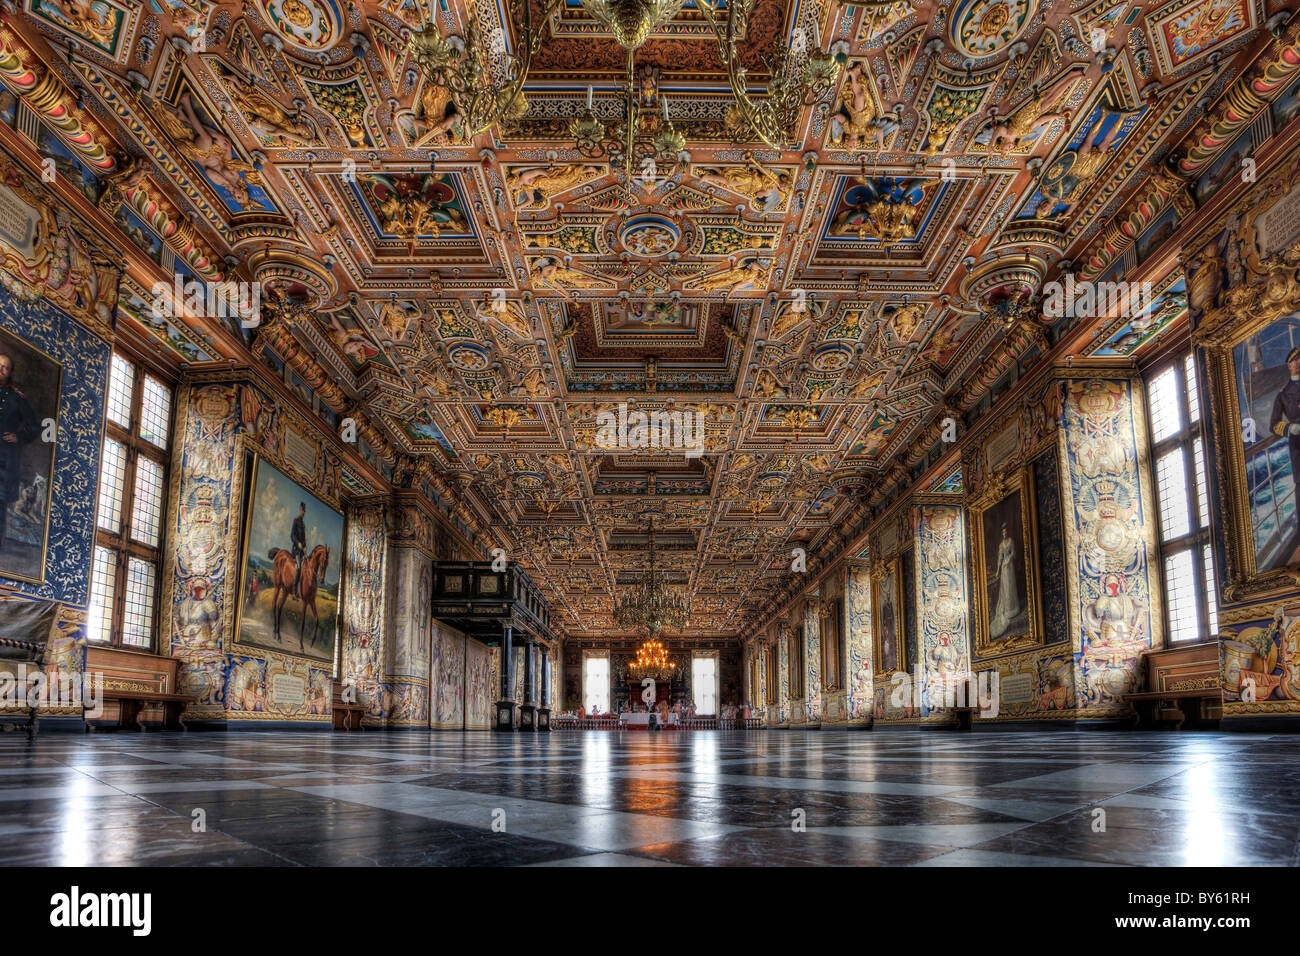 The Great Hall at Frederiksborg Castle in Denmark - Stock Image